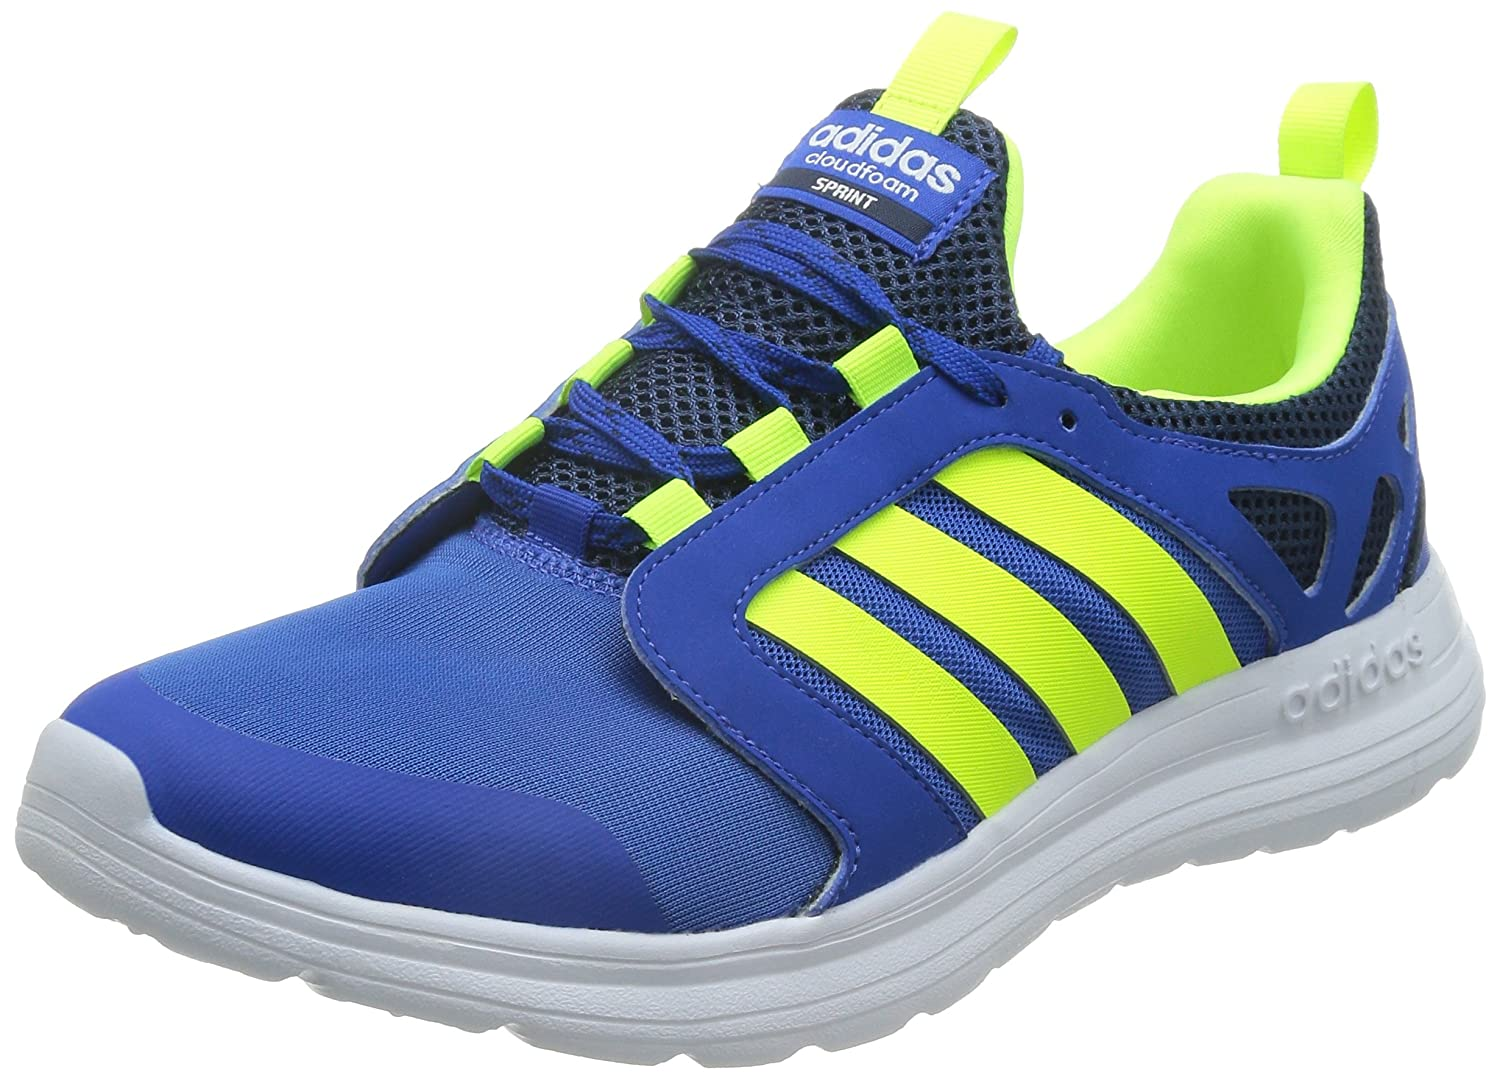 Mens Sneakers Cloudfoam Neo Sprint Running Shoes Sports Trainers Blue AQ1489 New